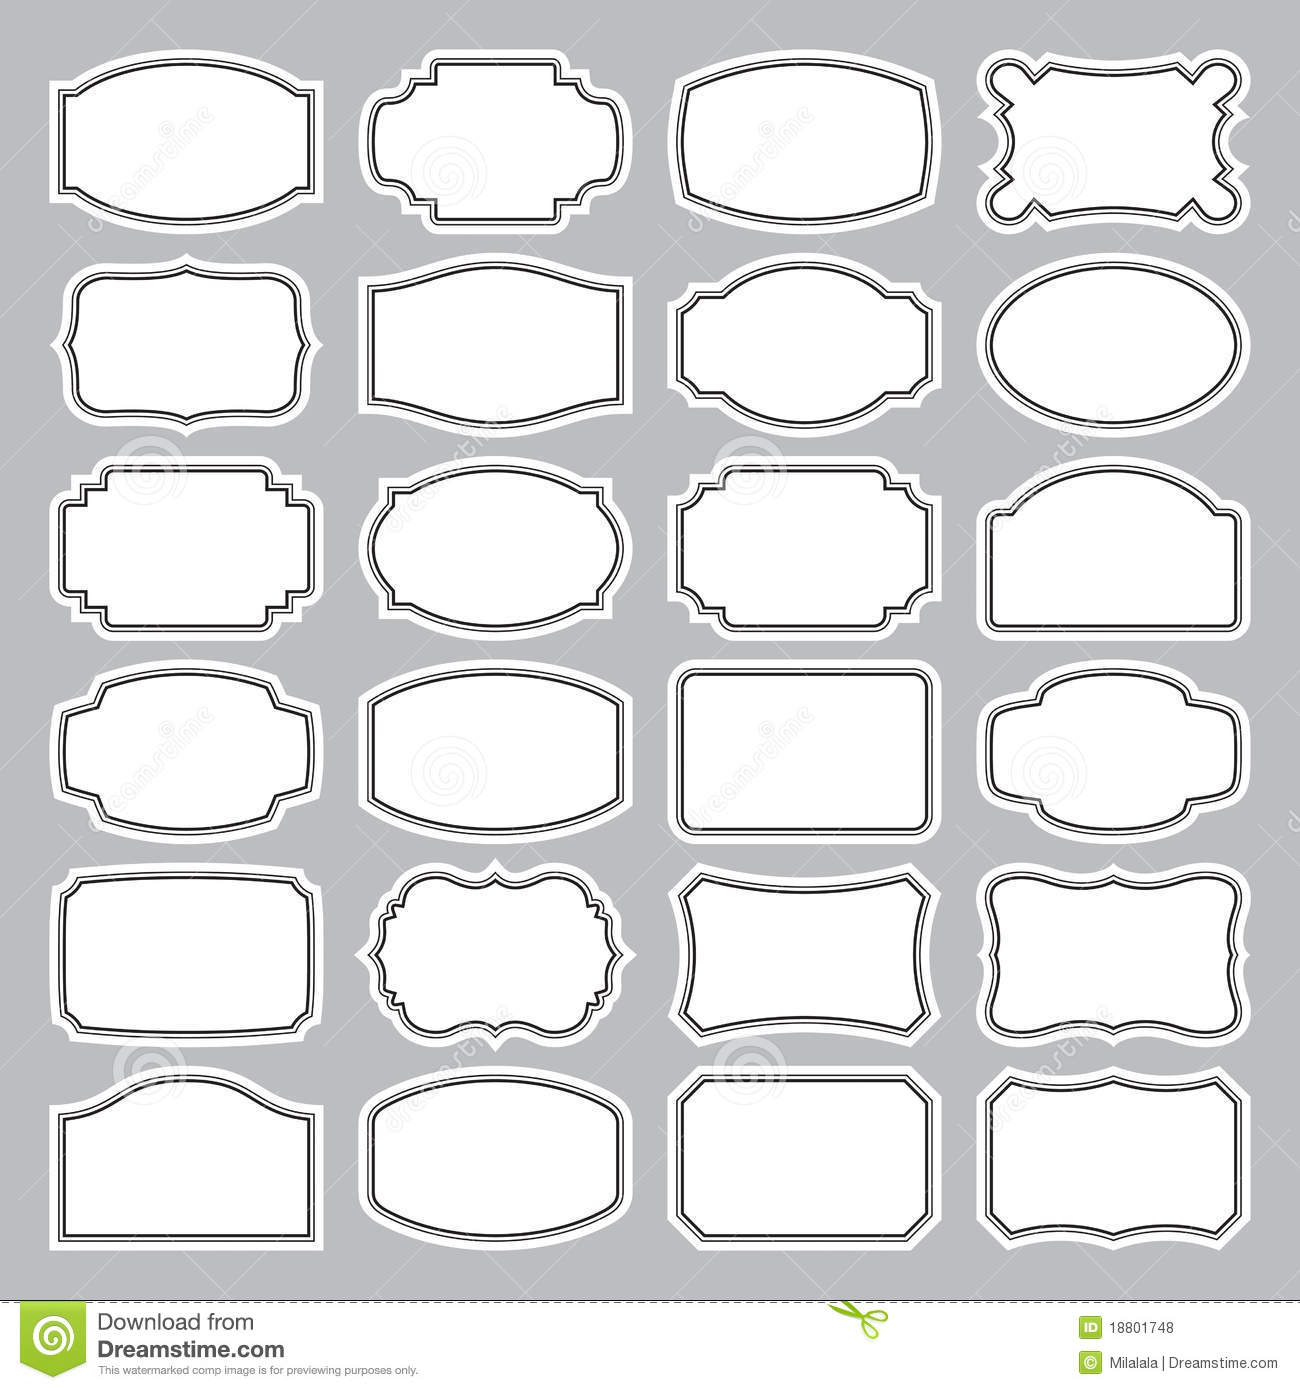 Blank Vector Calendar Template : Blank label vector images free printable labels